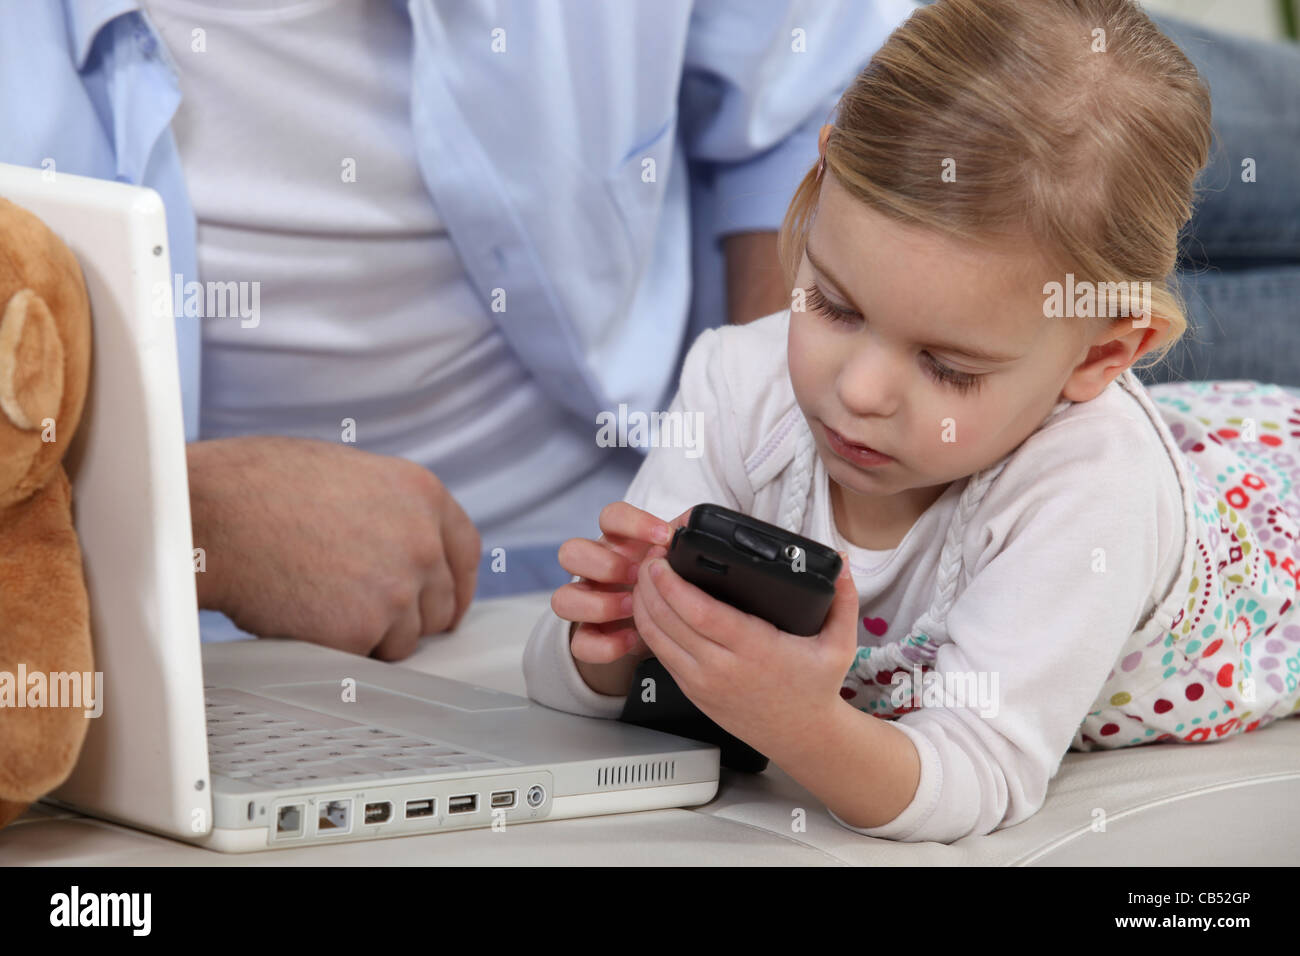 Young child playing with her father's mobile phone - Stock Image